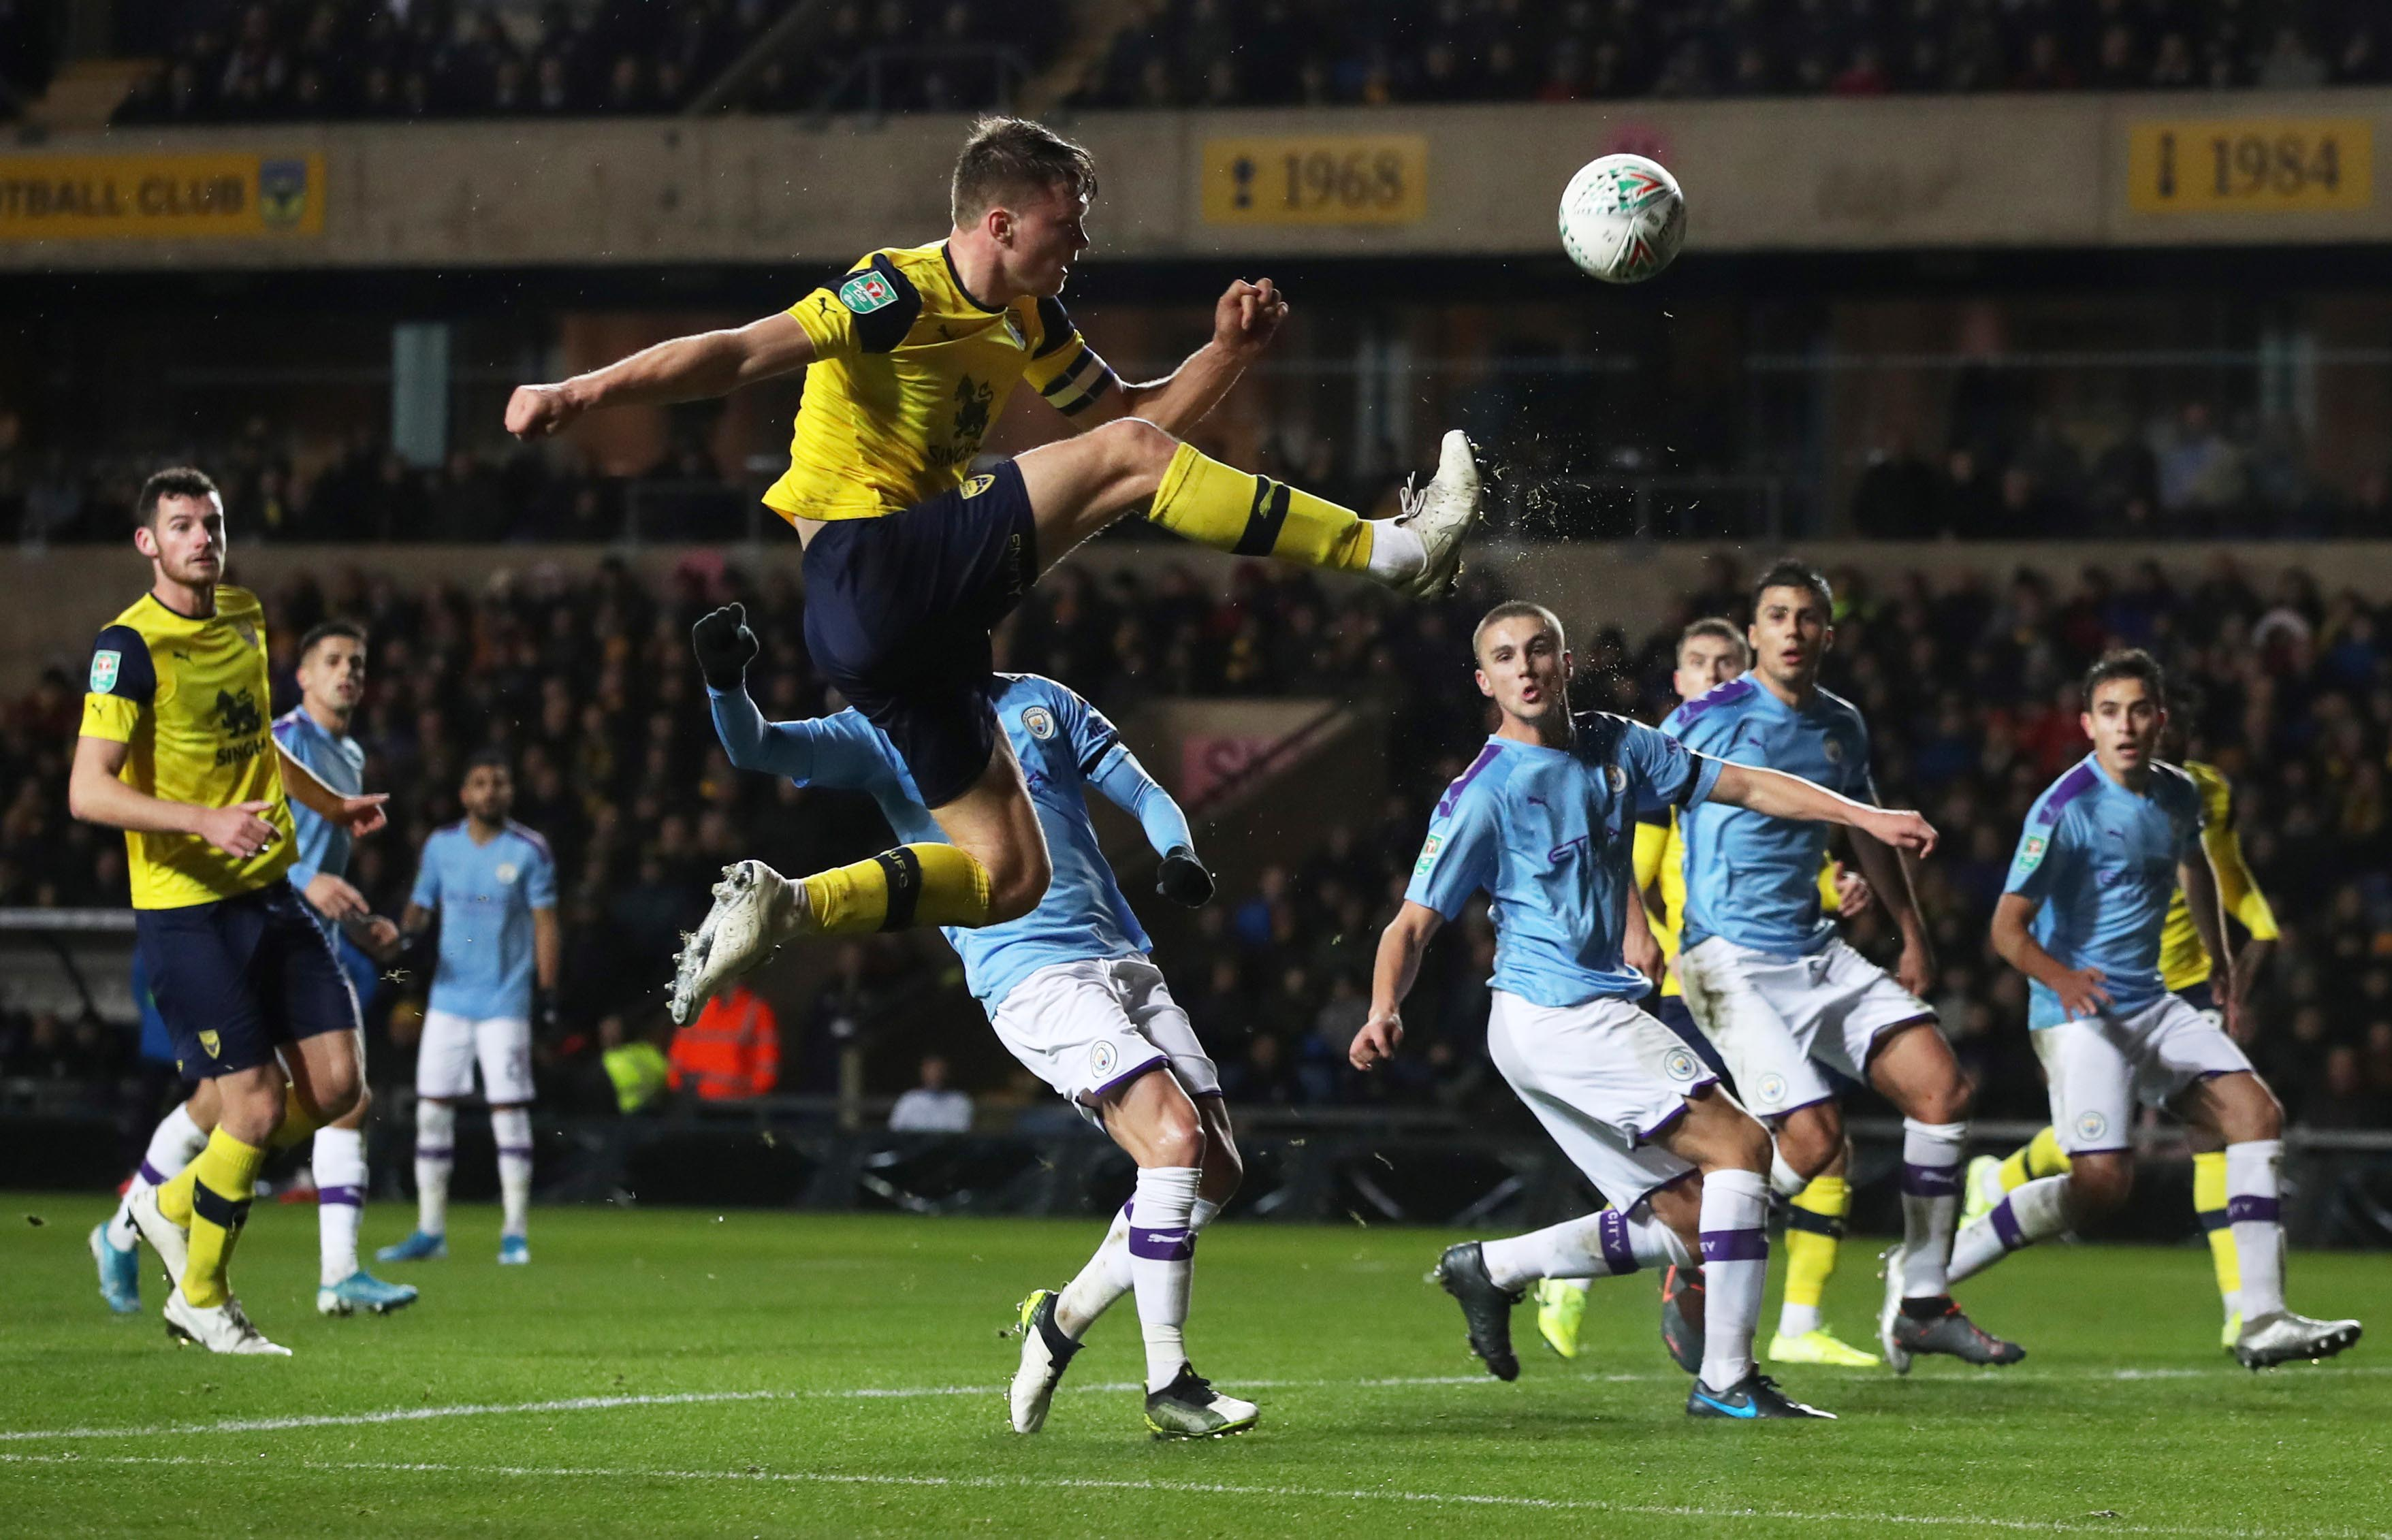 Oxford United's Robert Dickie in action during the Carabao Cup Quarter Final match between Oxford United and Manchester City, at Kassam Stadium, in Oxford, Britain, on December 18, 2019. Photo: Reuters